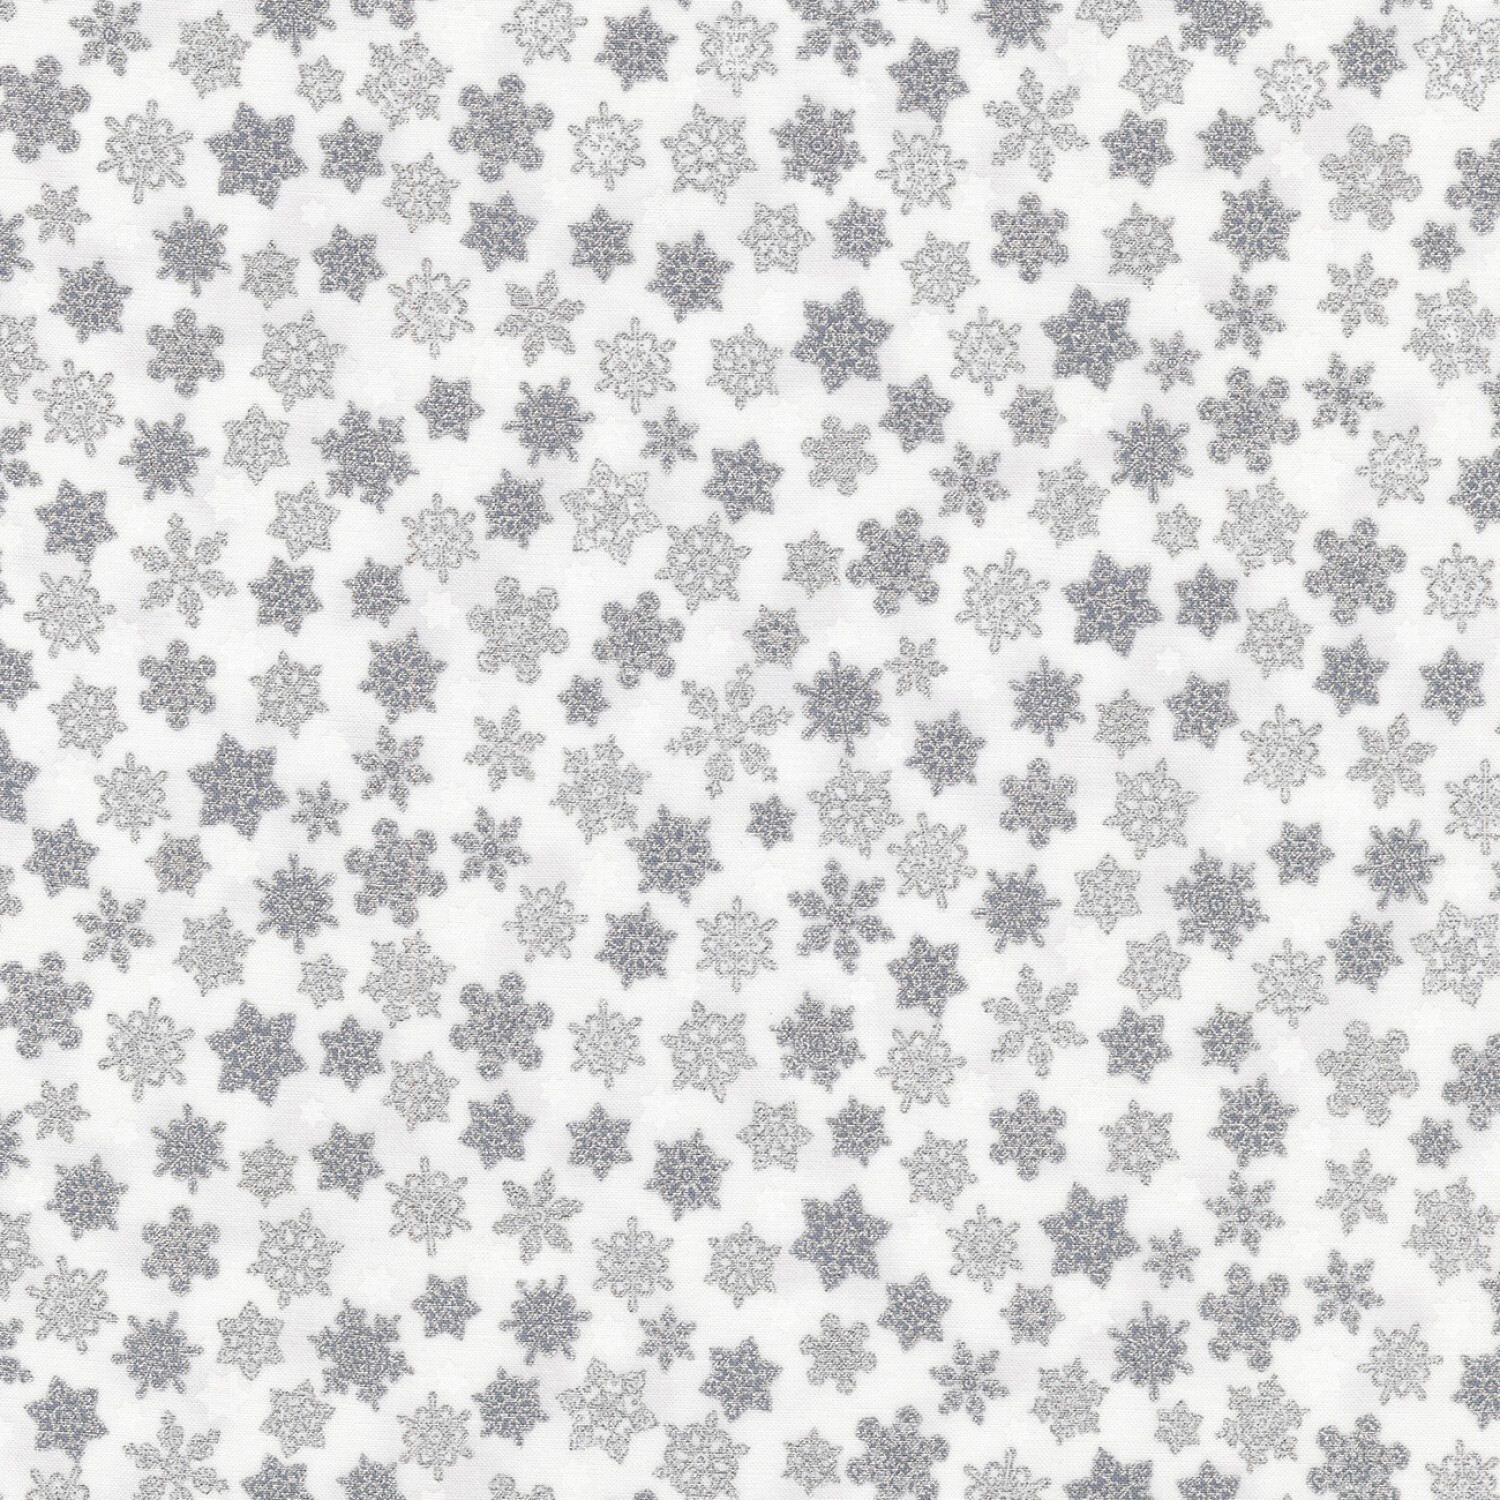 Holiday Charms - Silver Snowflakes on White - 1/2m cut 58119